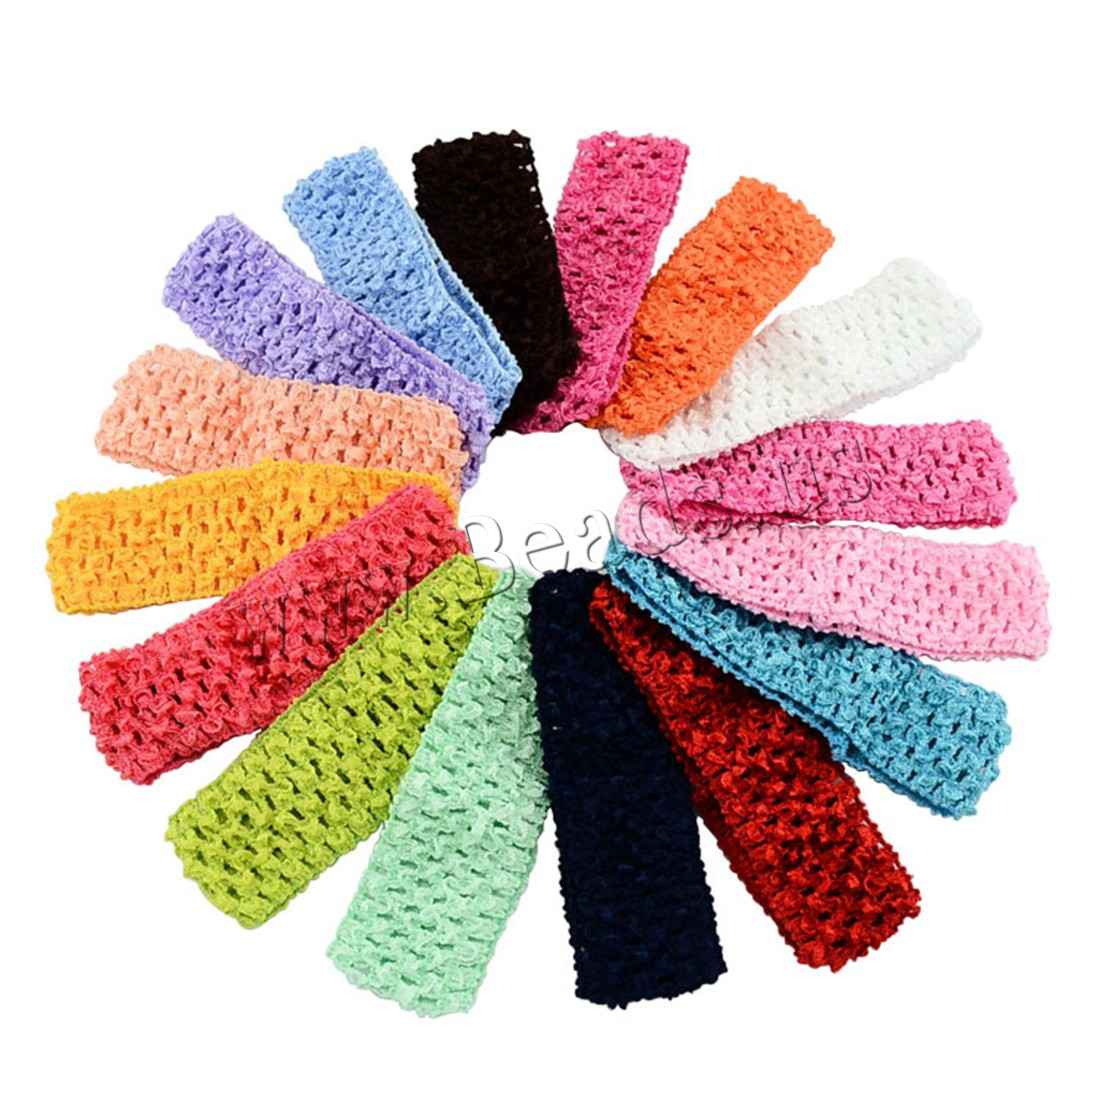 Buy Cotton Headband Nylon elastic & children mixed colors 40mm Length:Approx 11.4 Inch 1 Sold Lot